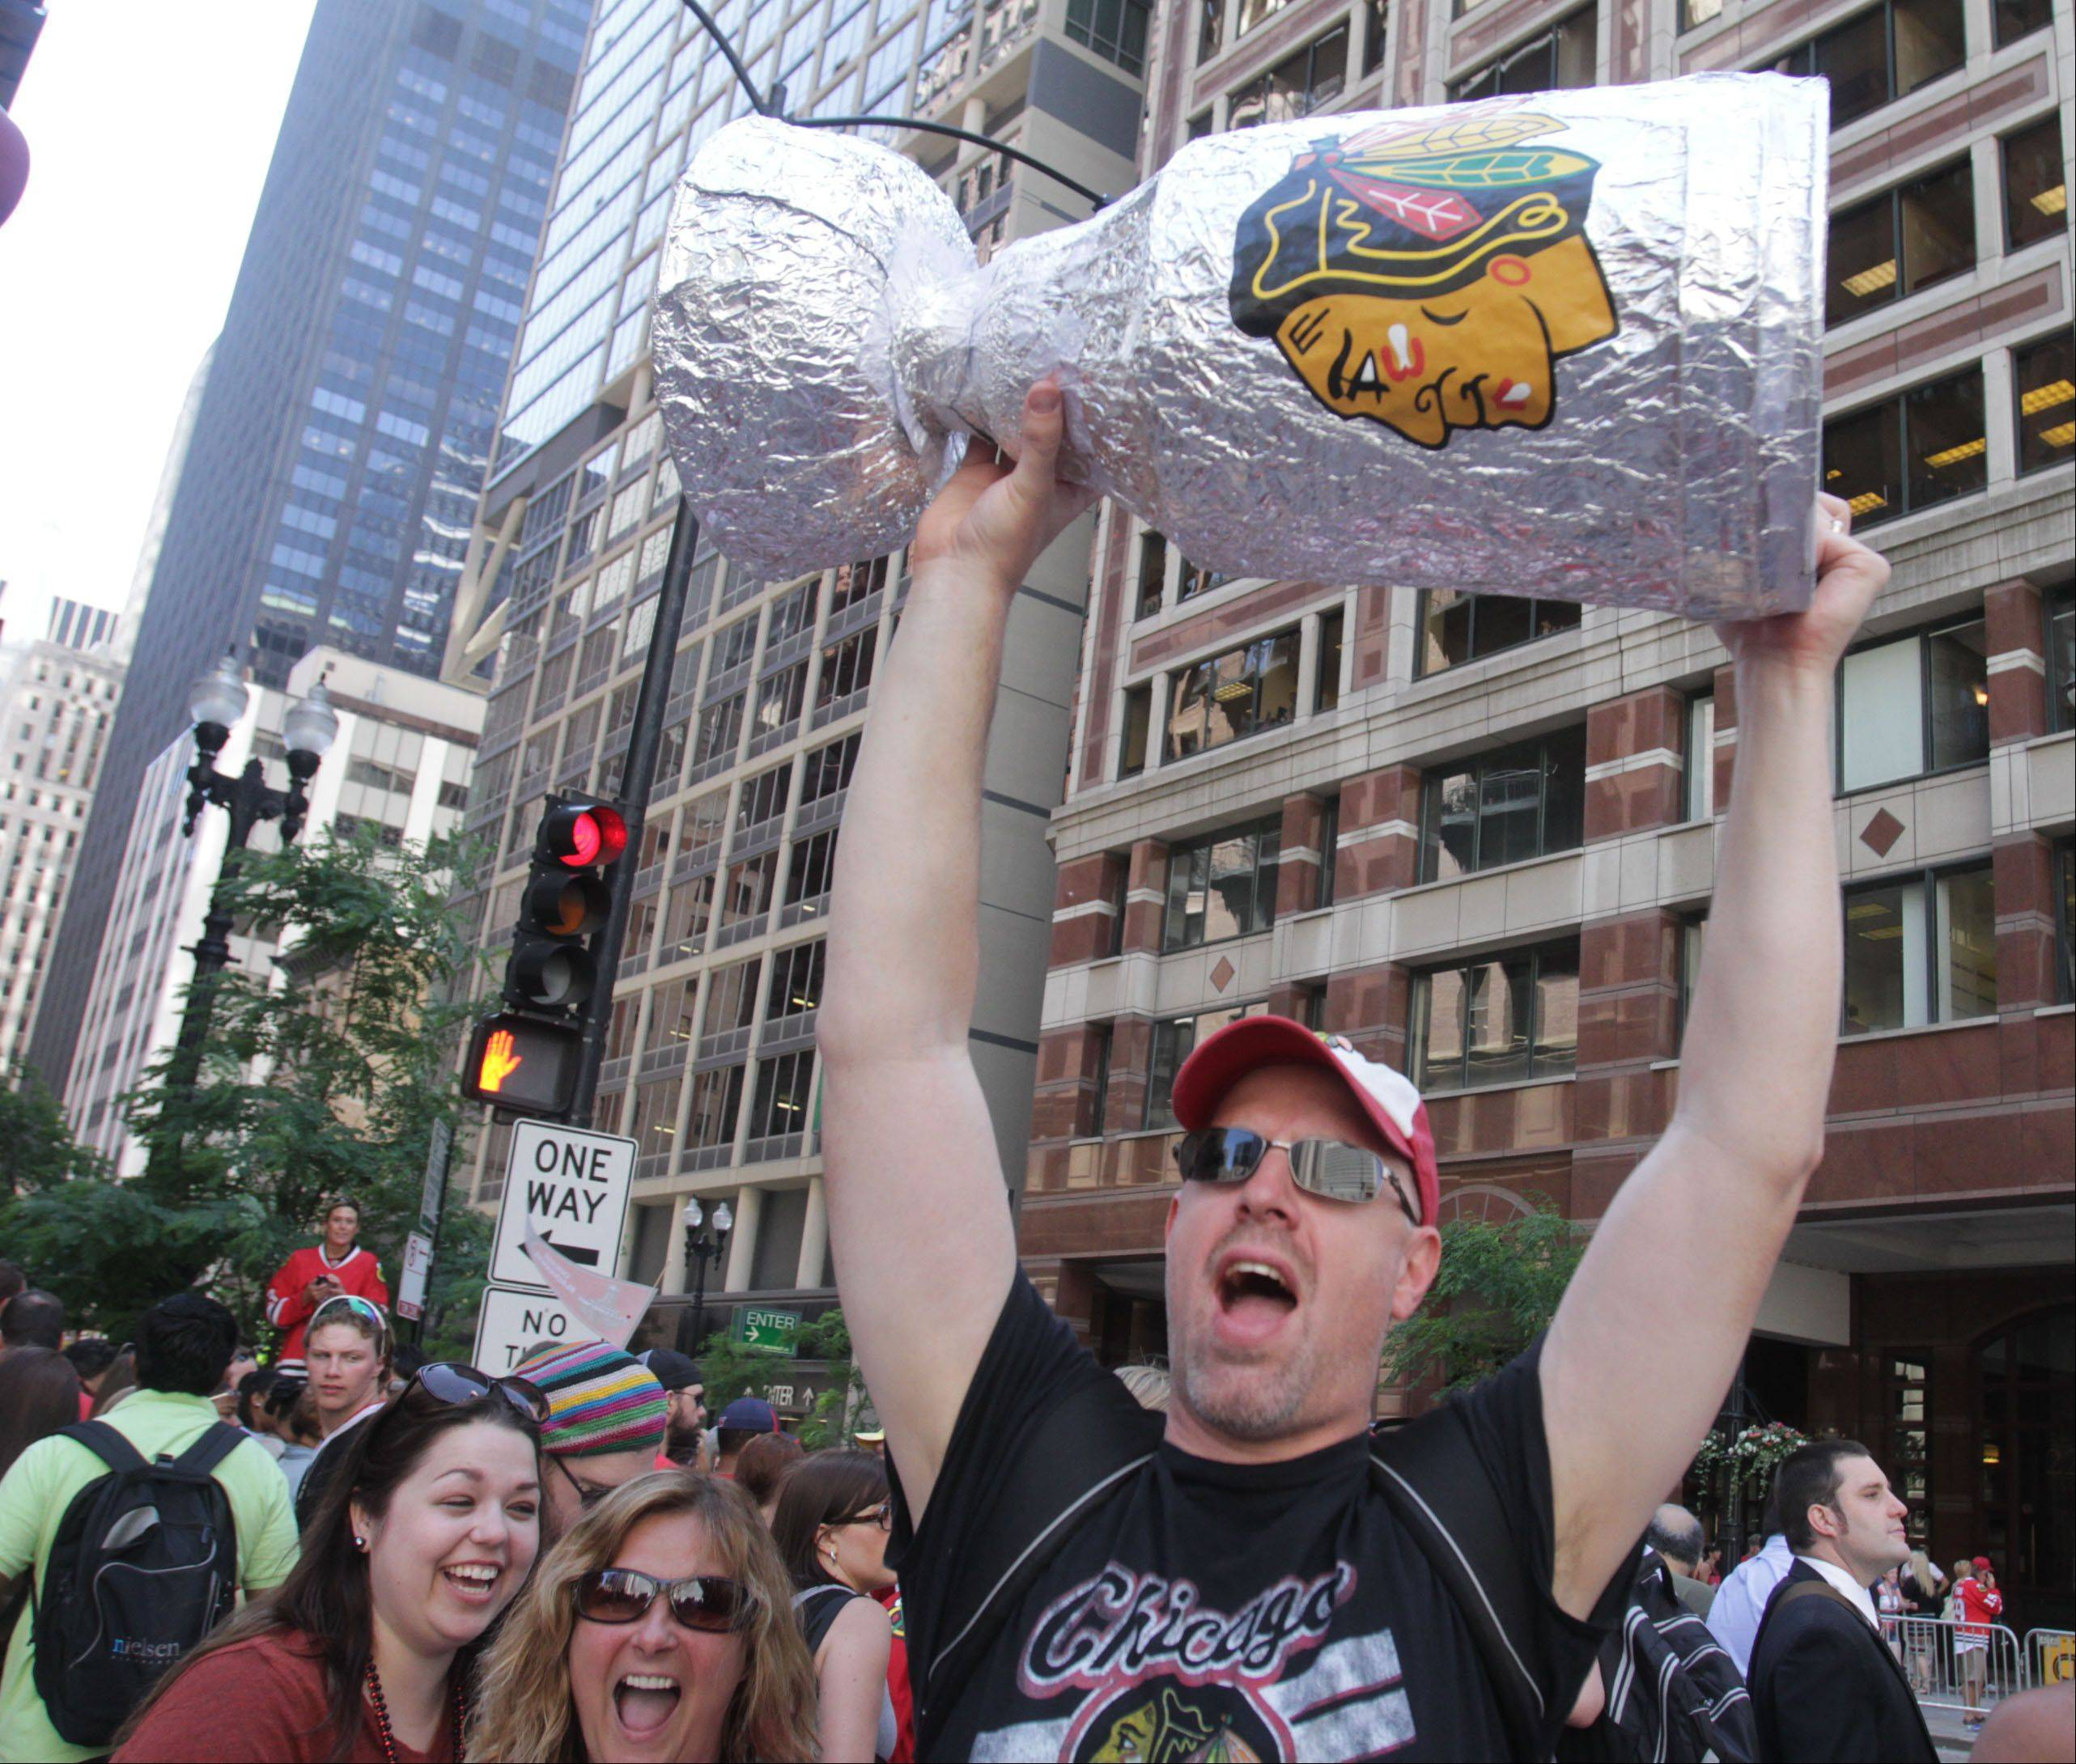 Kevin Quinn of Naperville lifts his homemade Stanley Cup as the Blackhawks parade travels past him on Washington Street in Chicago on Friday.